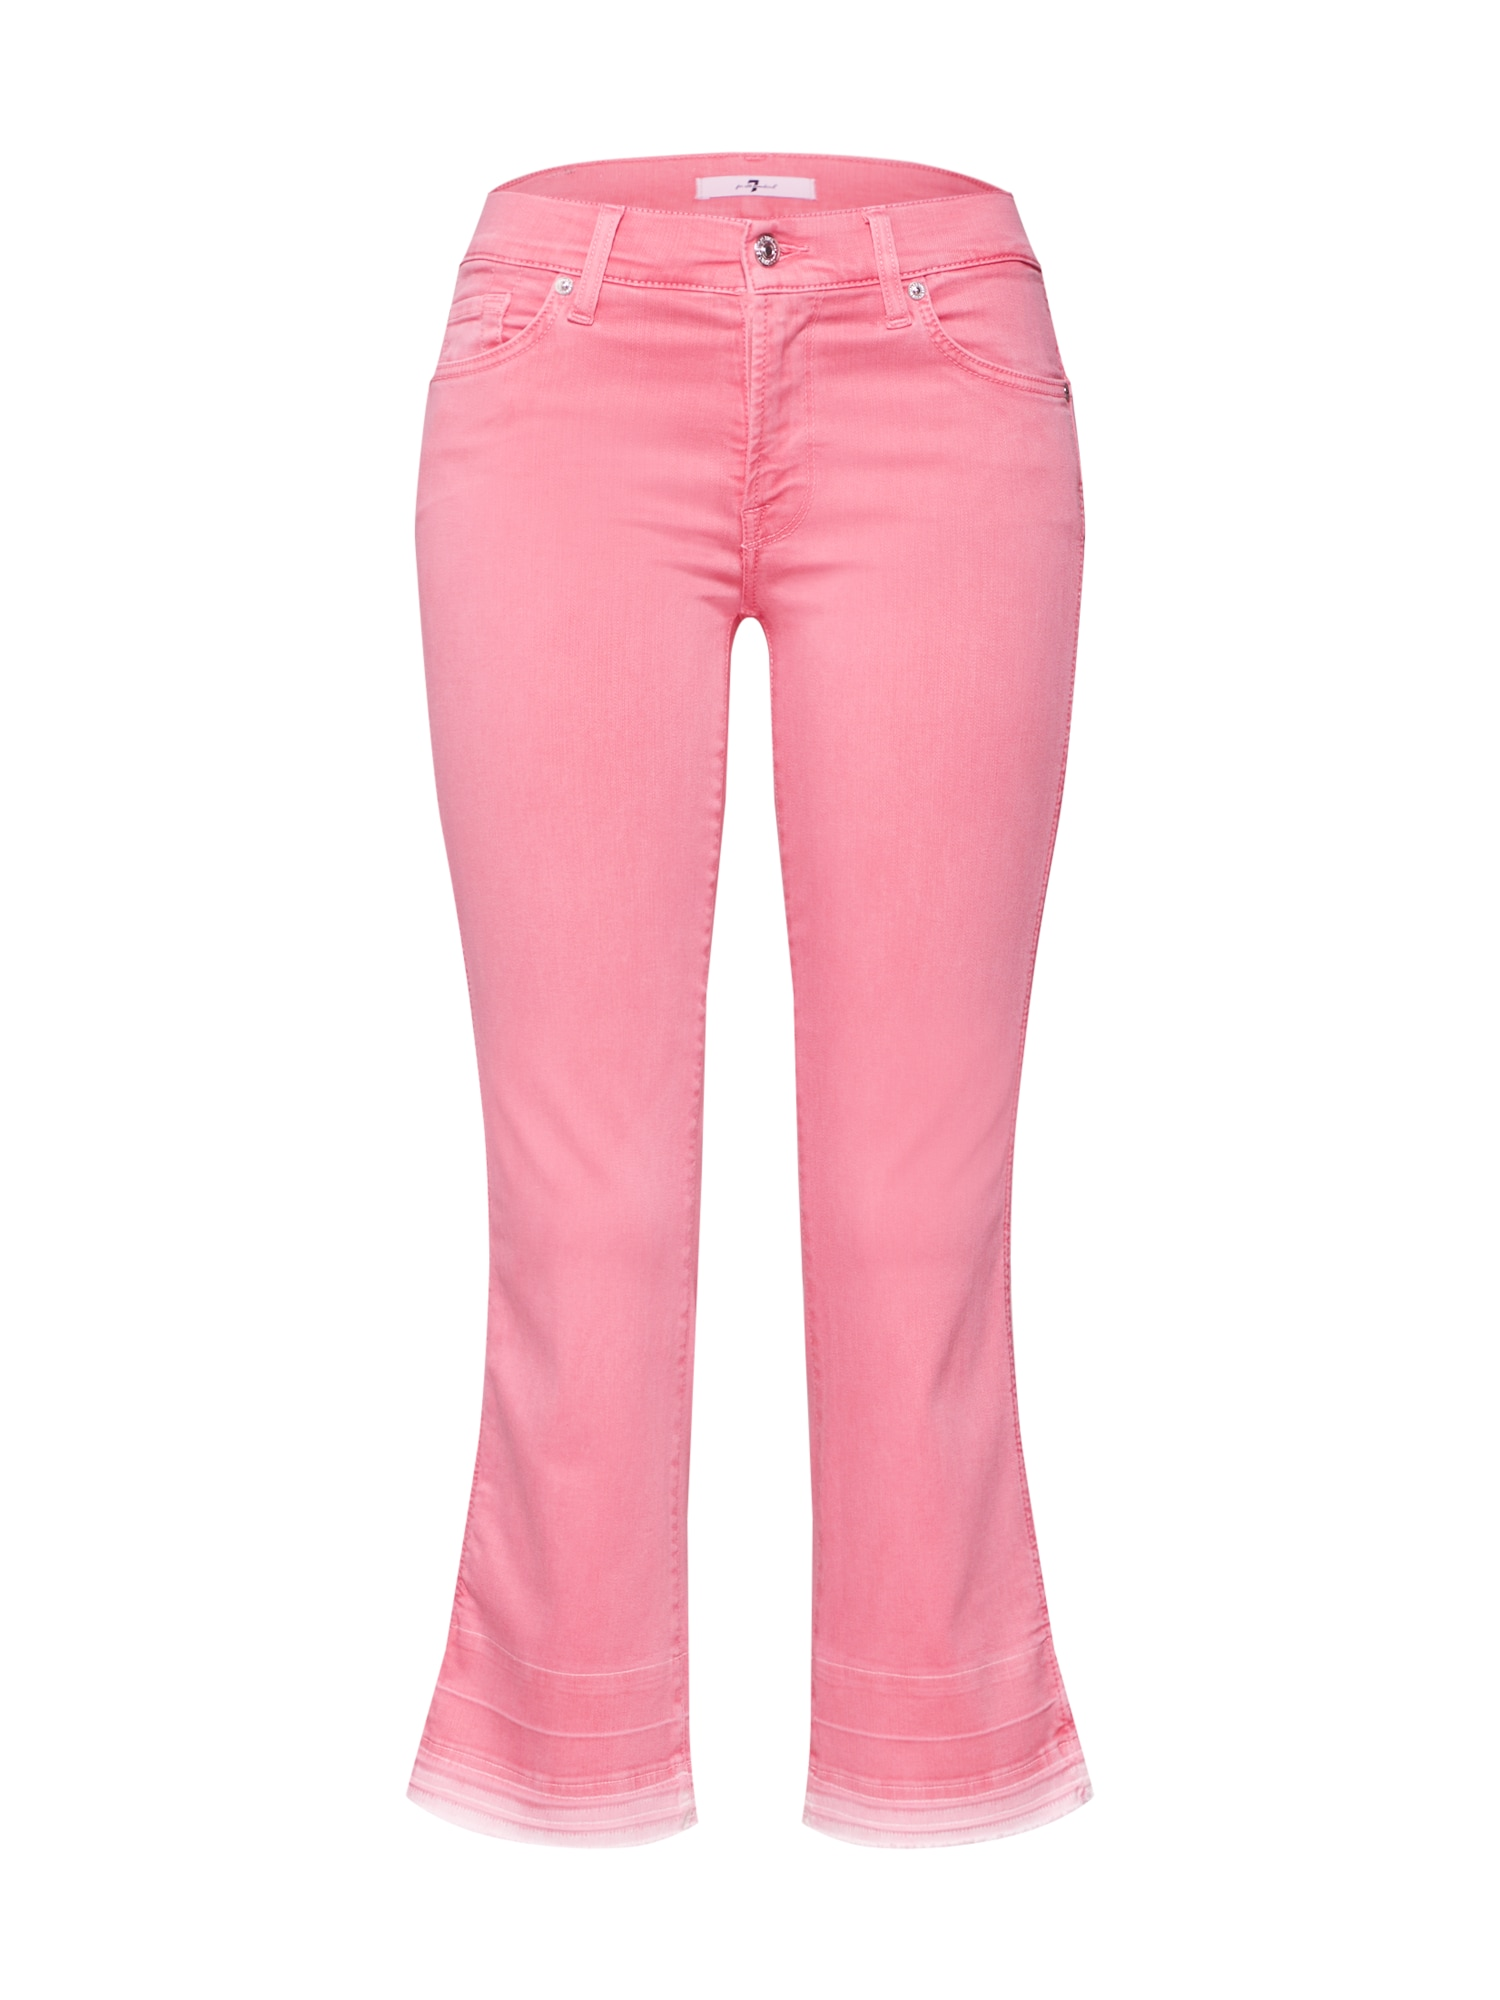 7 for all mankind Džíny pink 7 For All Mankind